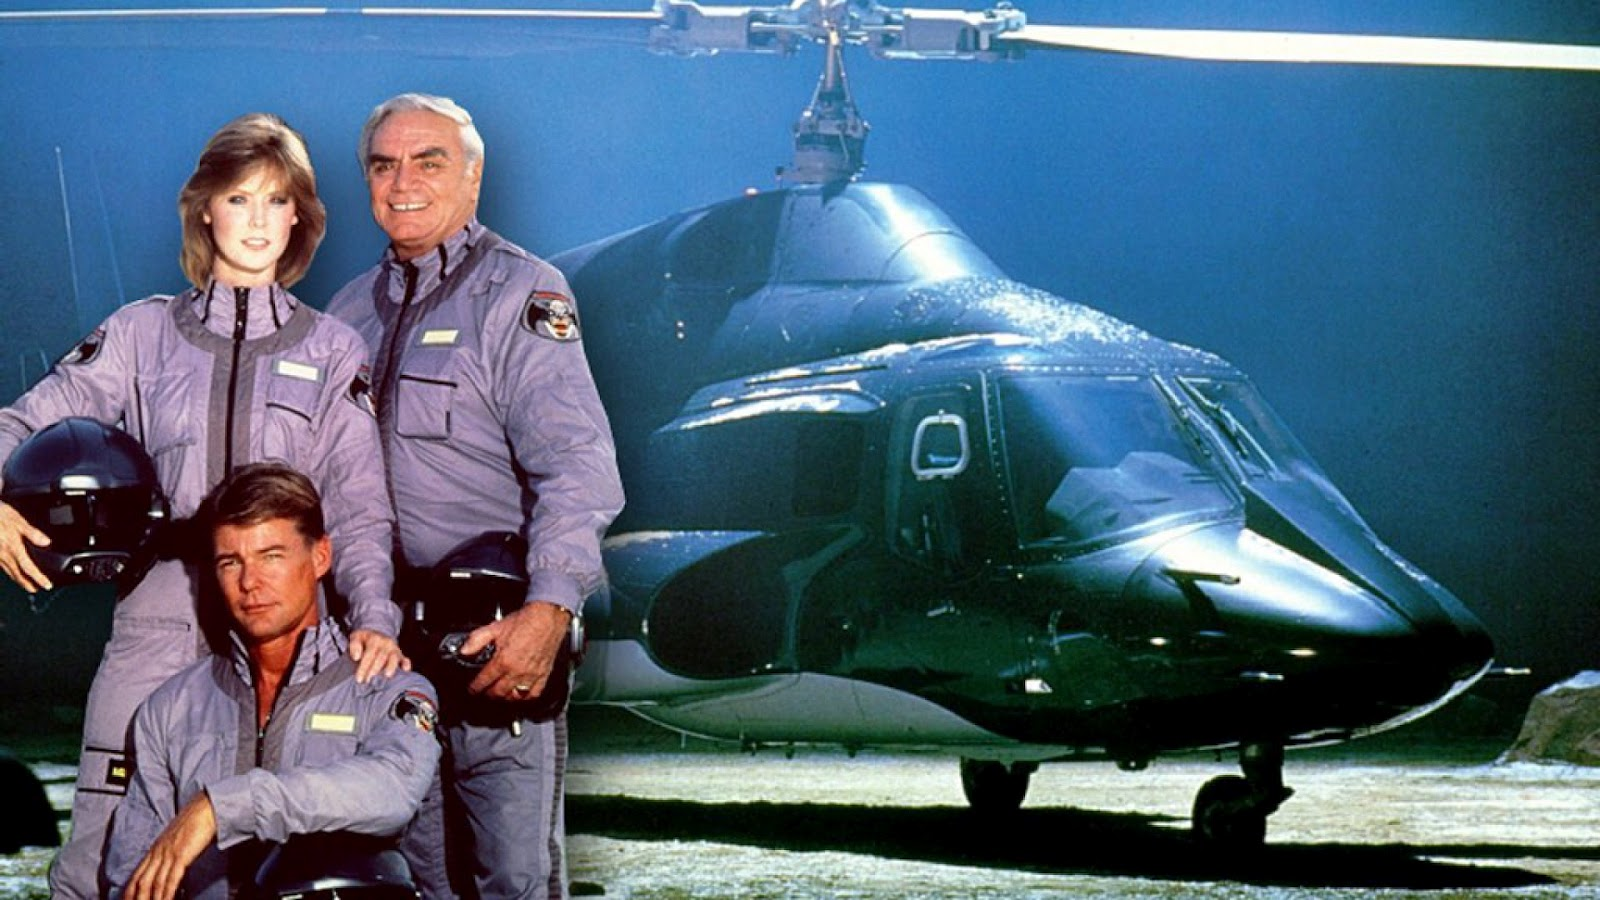 Airwolf helicopter tv show - photo#4